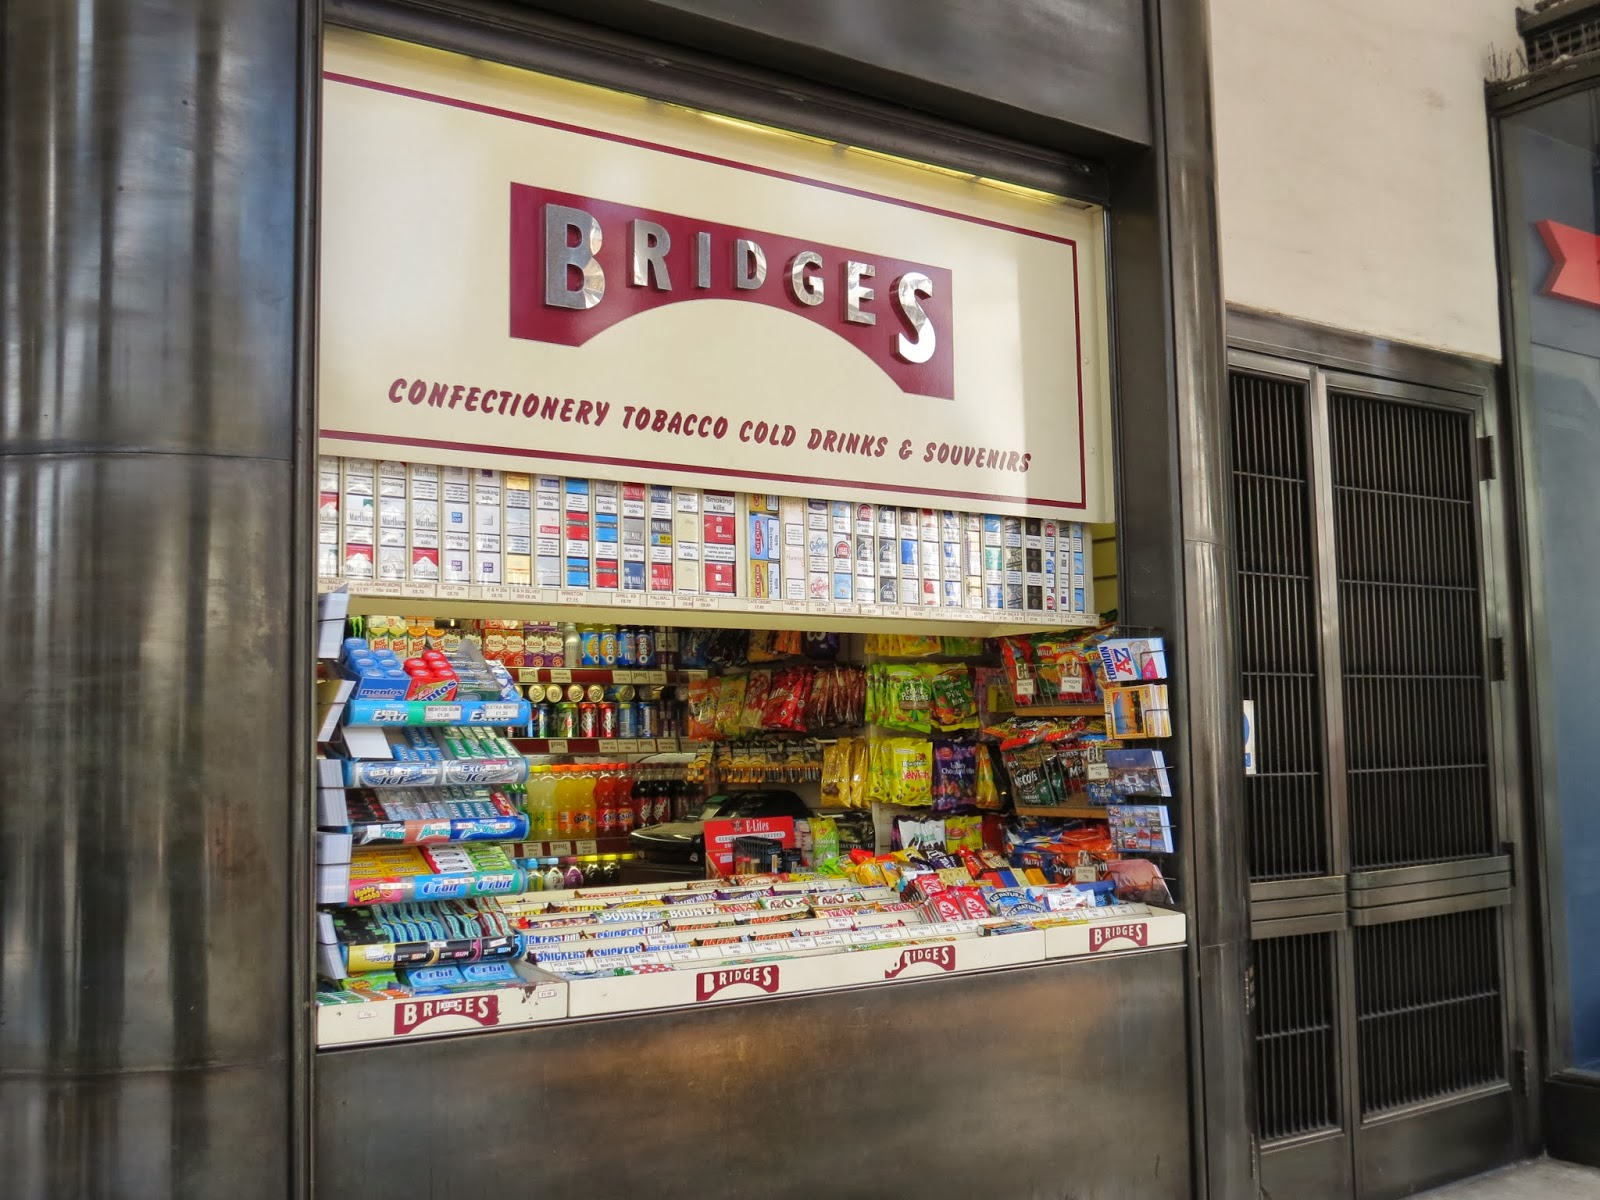 Covent garden Birdges confectionery